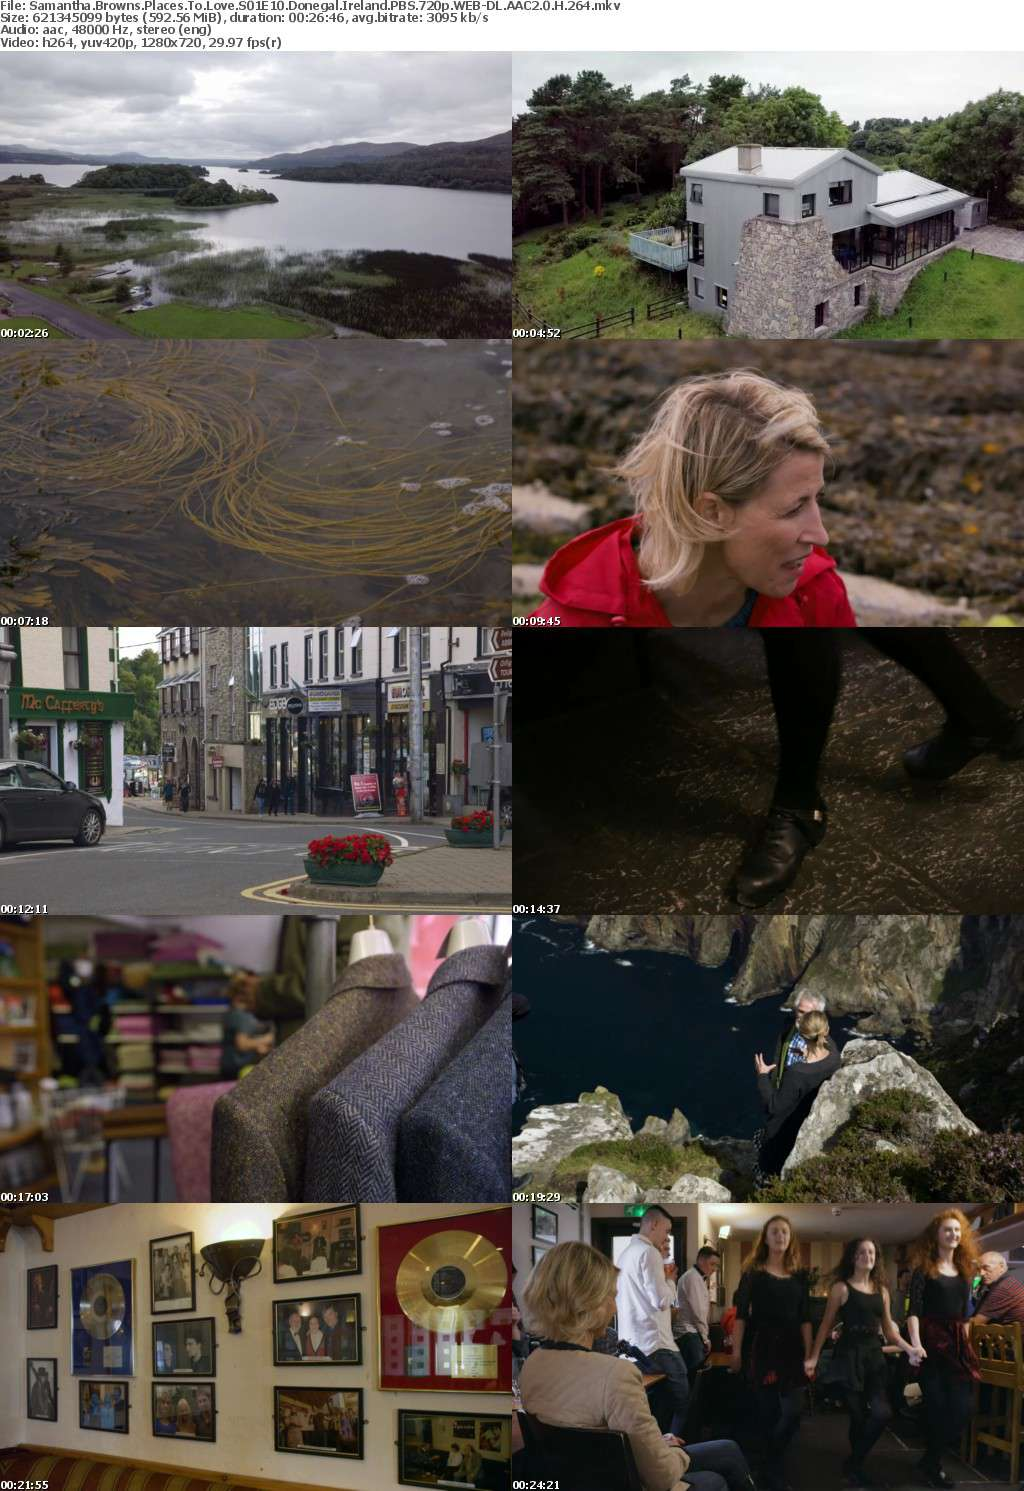 Samantha Browns Places To Love S01E10 Donegal Ireland PBS 720p WEB-DL AAC2 0 H 264